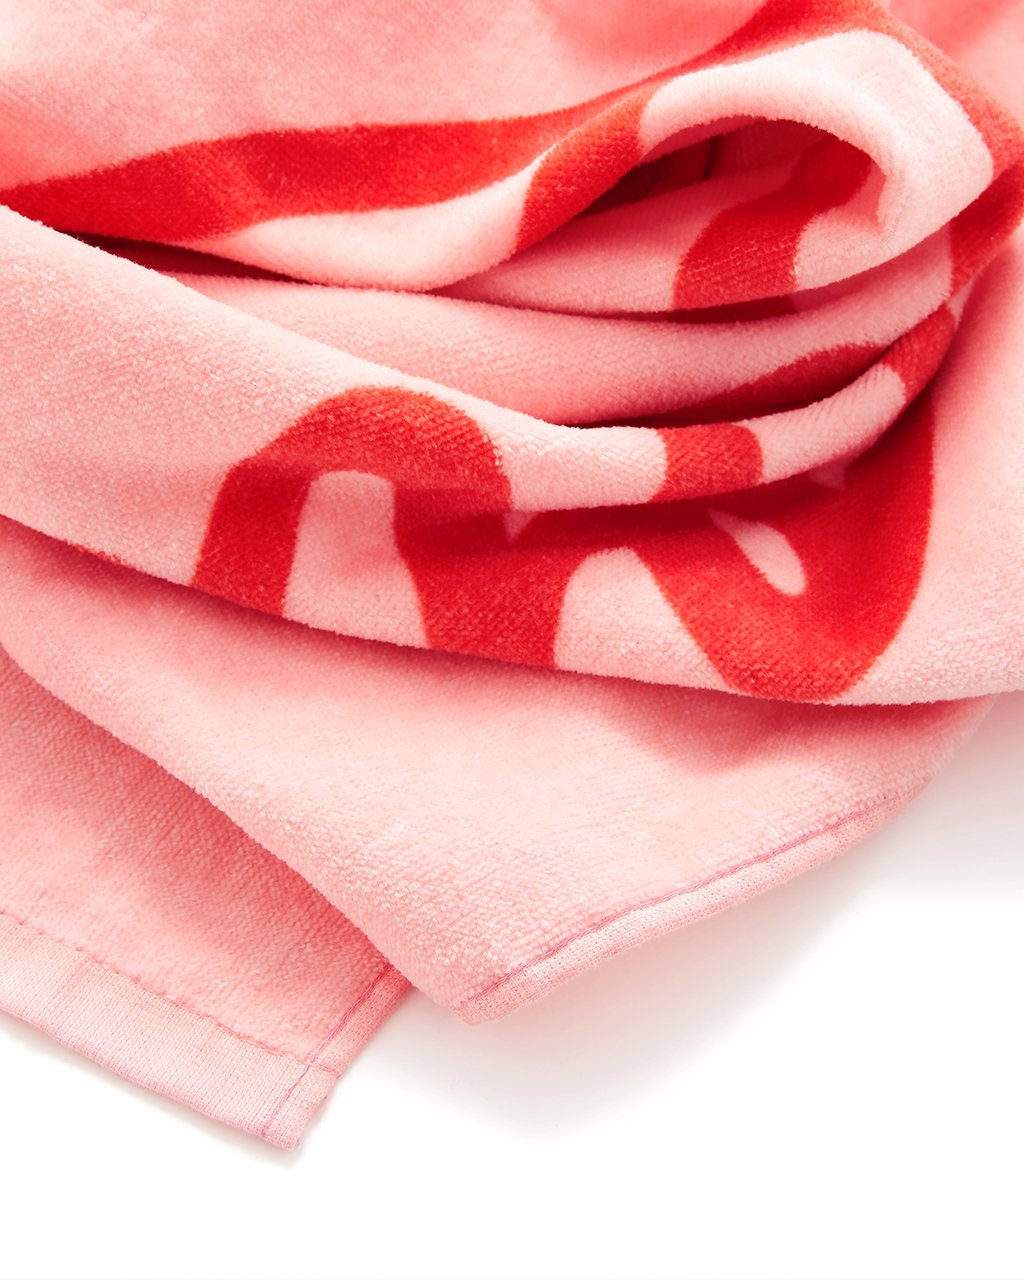 Made of extra-soft terry cloth, this towel is perfect for lounging.